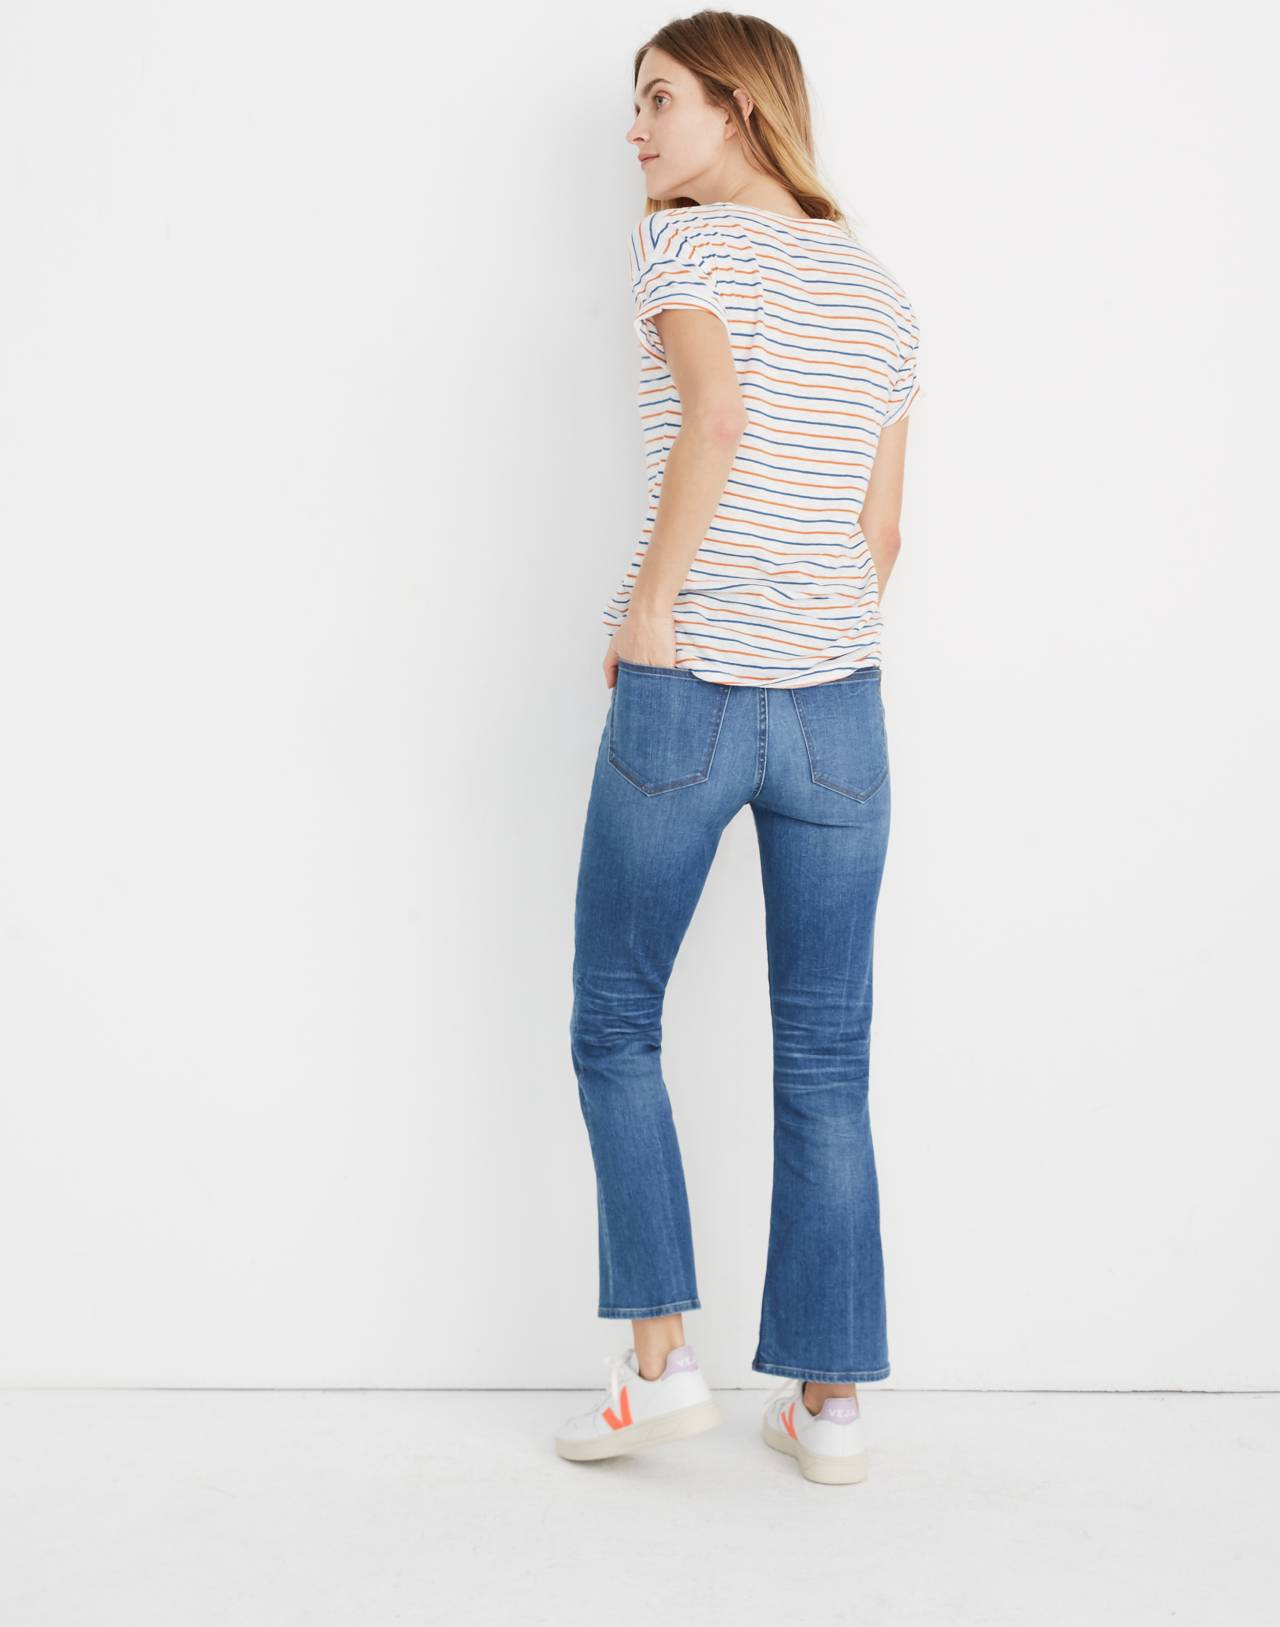 Whisper Cotton Crewneck Tee in Brion Stripe in bright ivory image 3